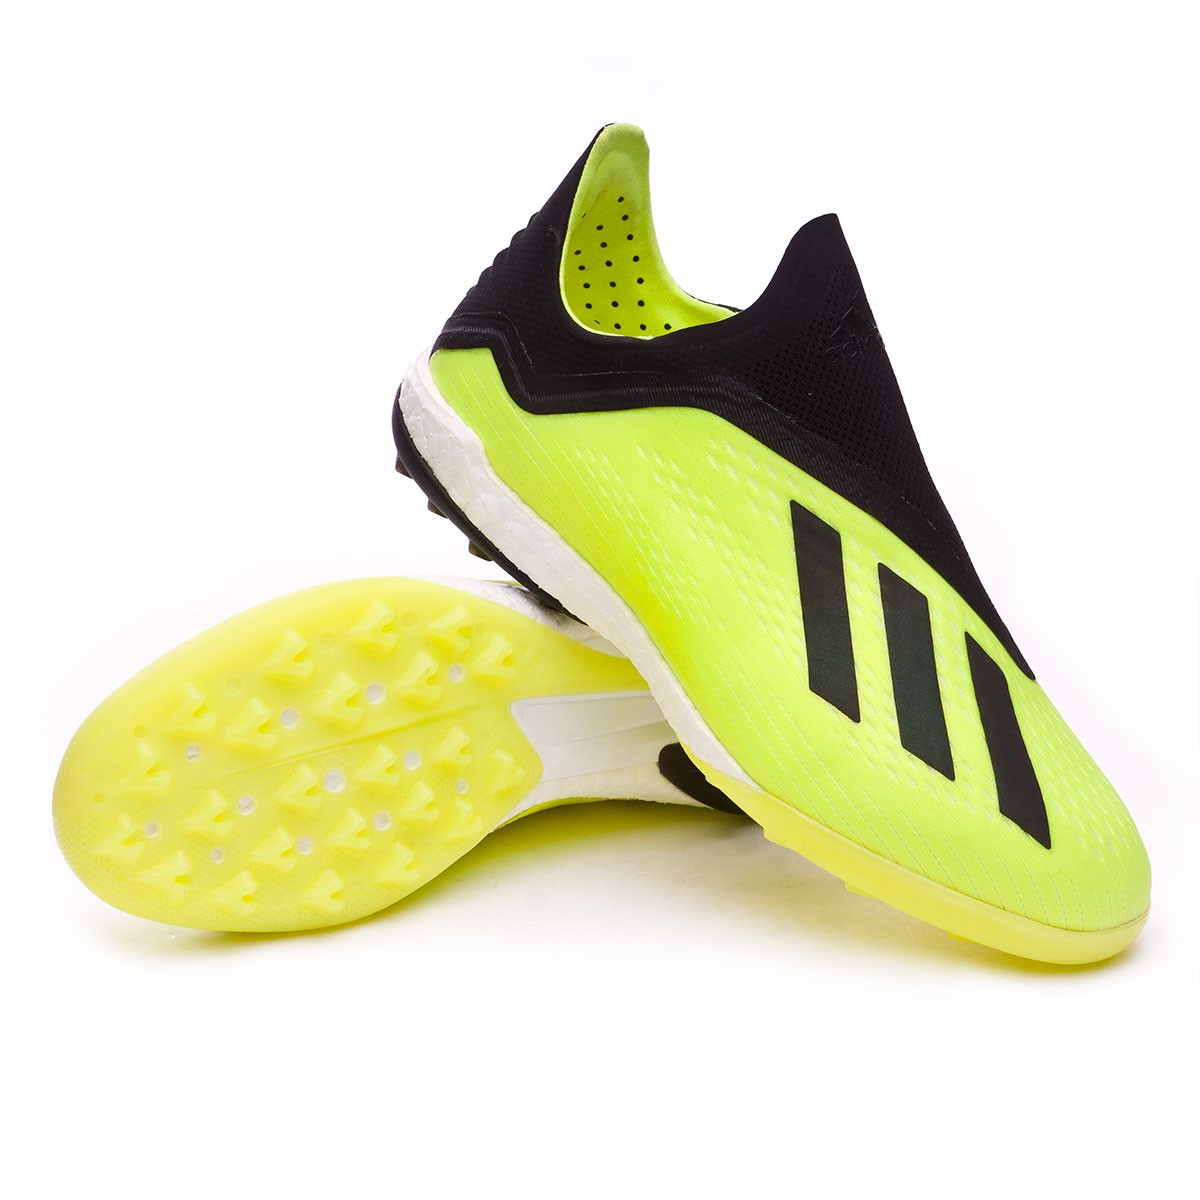 new product ffd9d 3118a adidas X Tango 18+ Turf Football Boot. Solar yellow-Core black-White ...